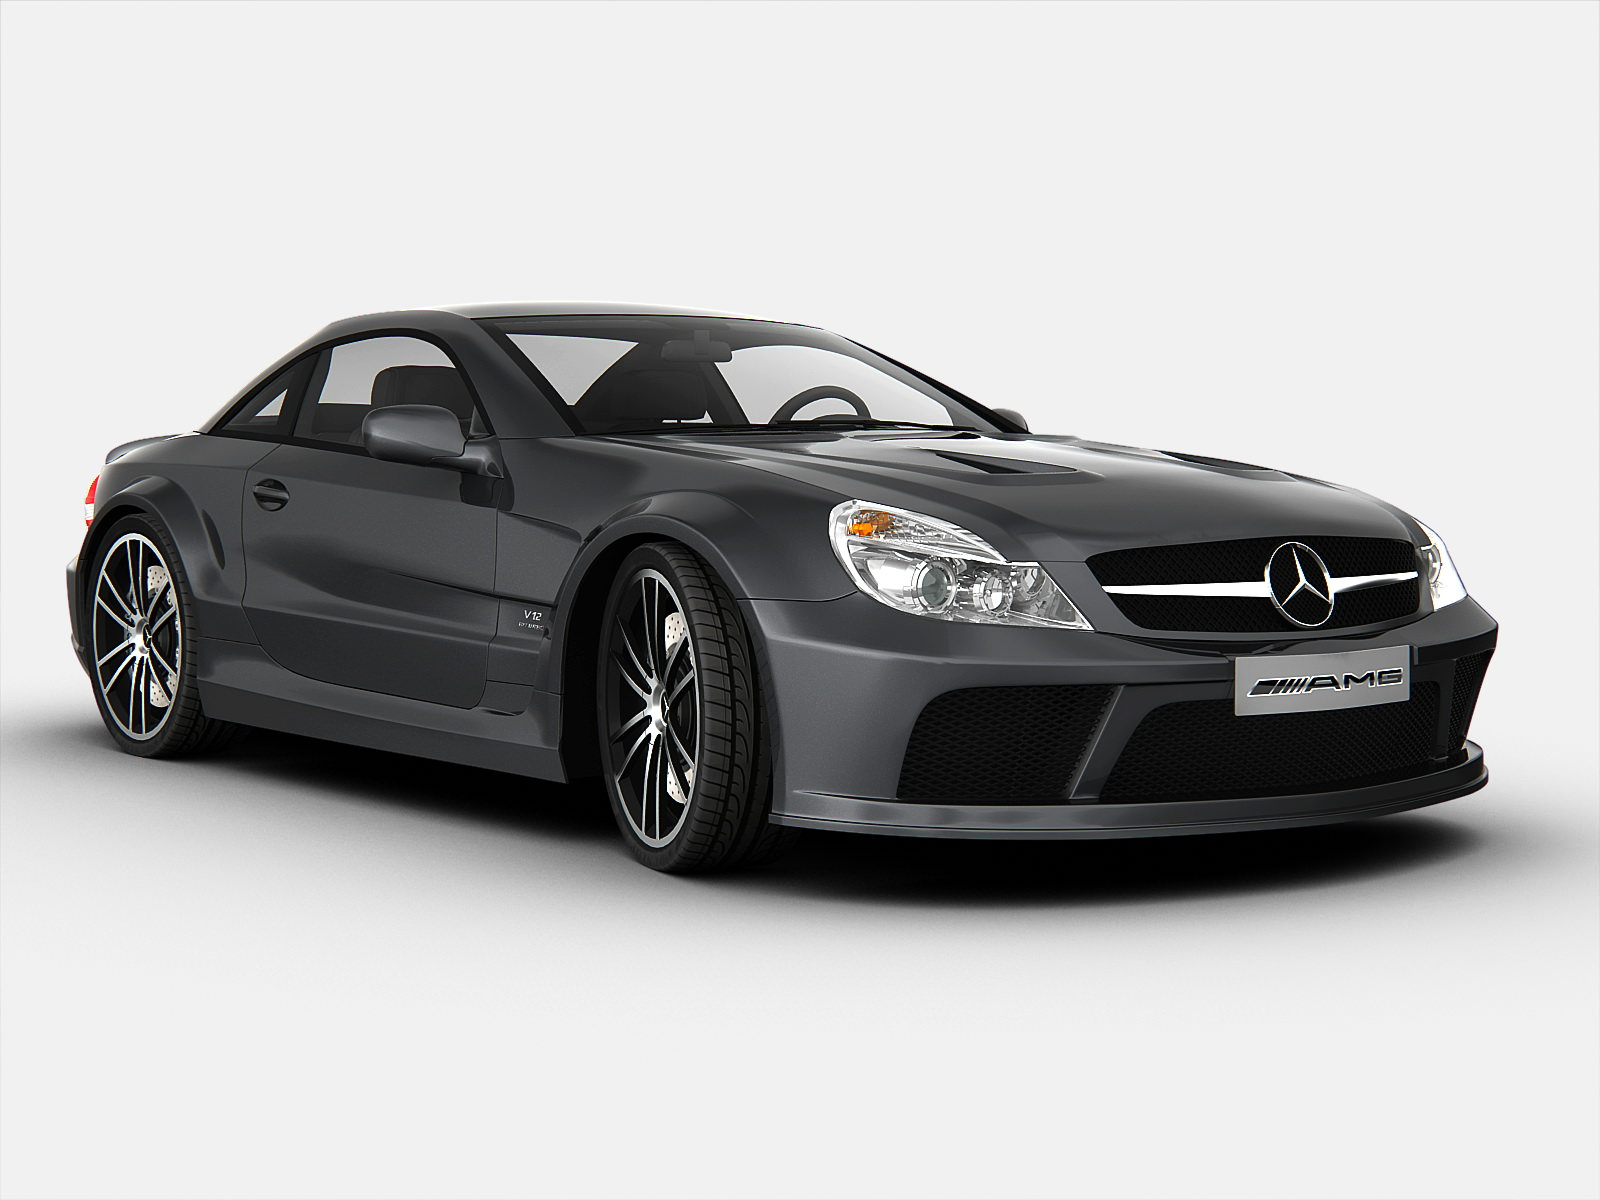 BrianZuk spots an absolutely stunning RED Mercedes SL65 AMG Black Series...very  rare